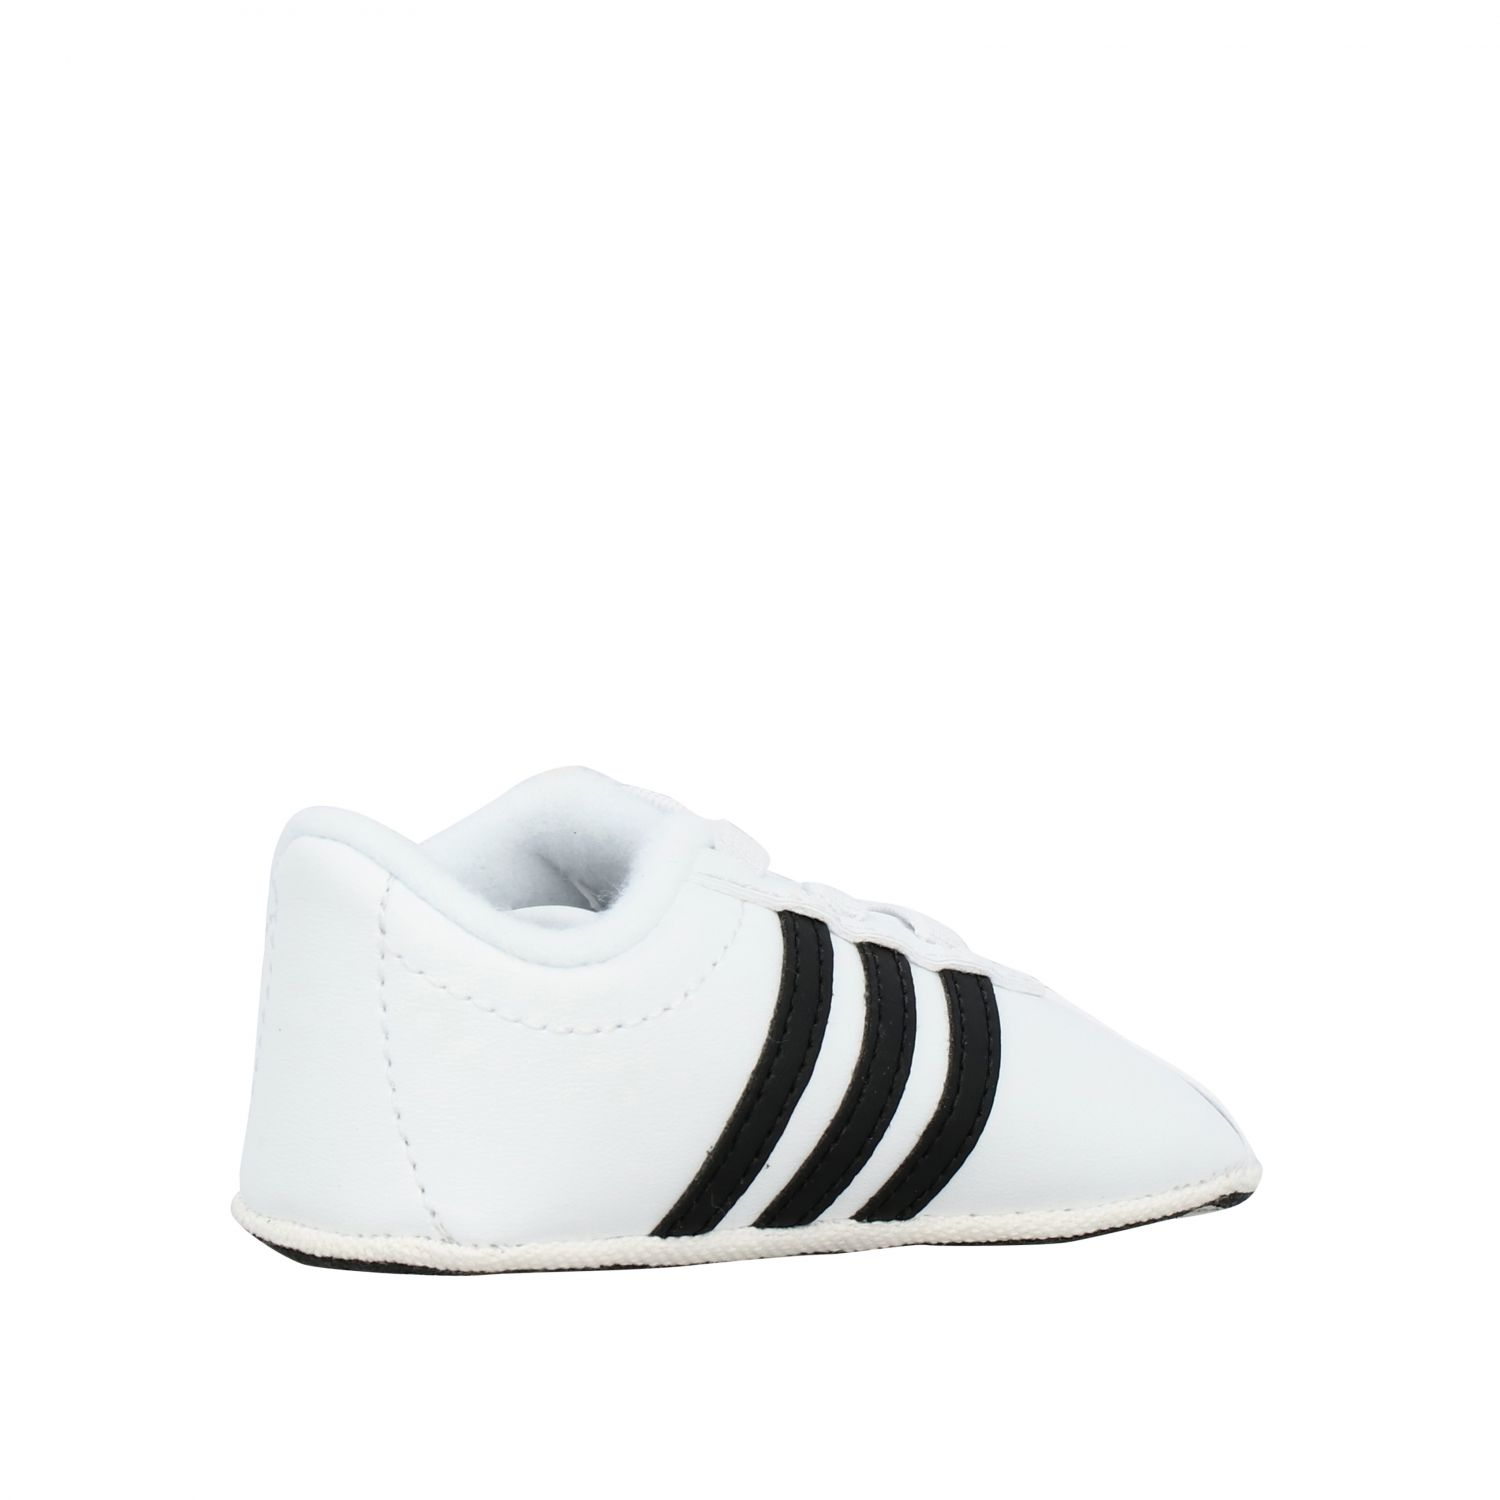 Zapatos Adidas Originals: Zapatos niños Adidas Originals blanco 5